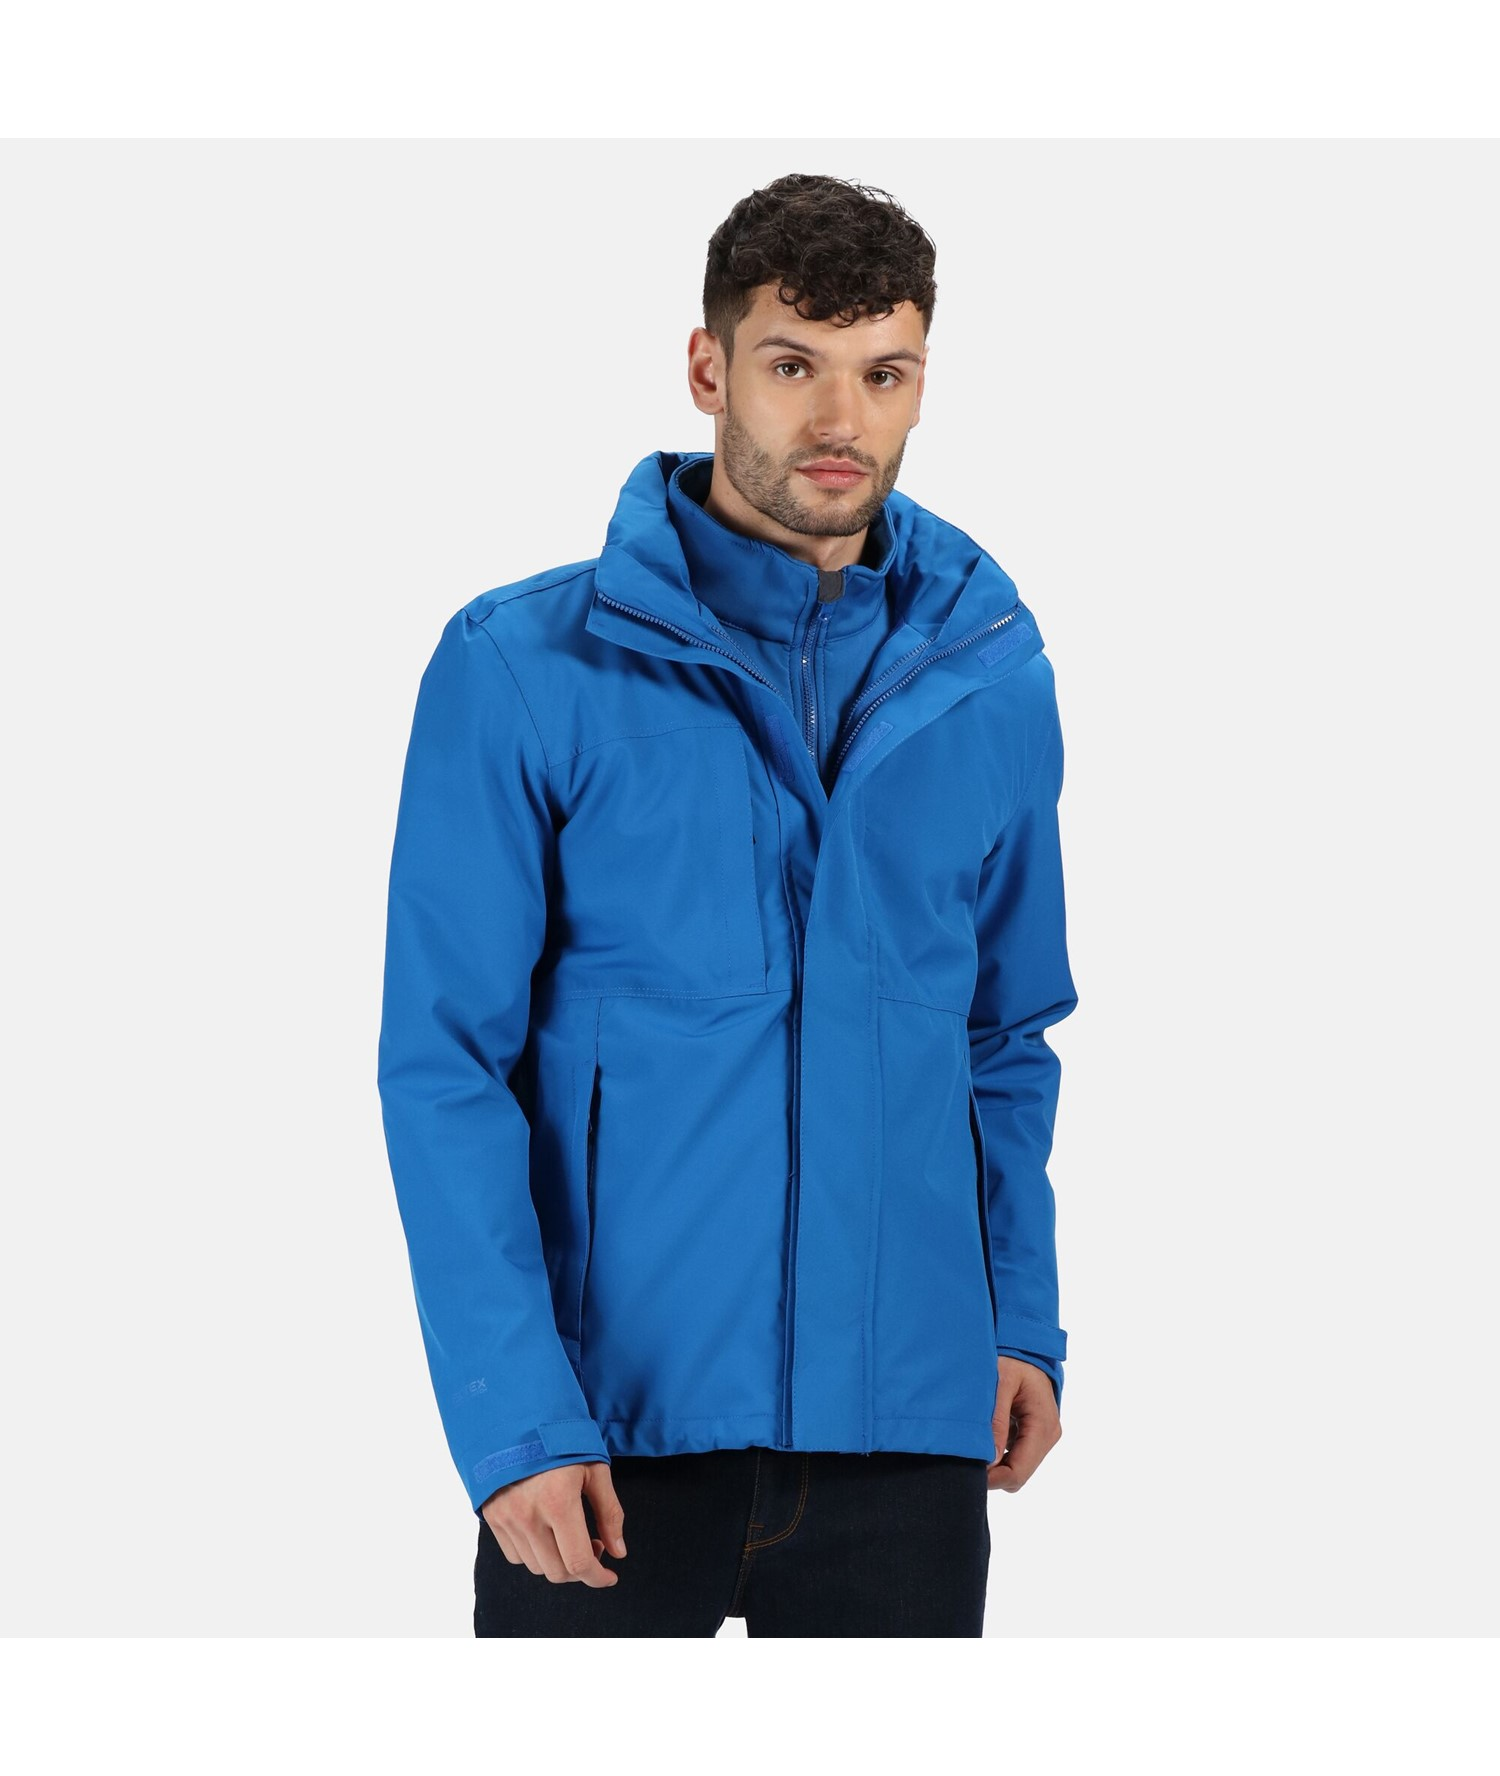 3 IN 1 JACKET KINGSLEY STRETCH